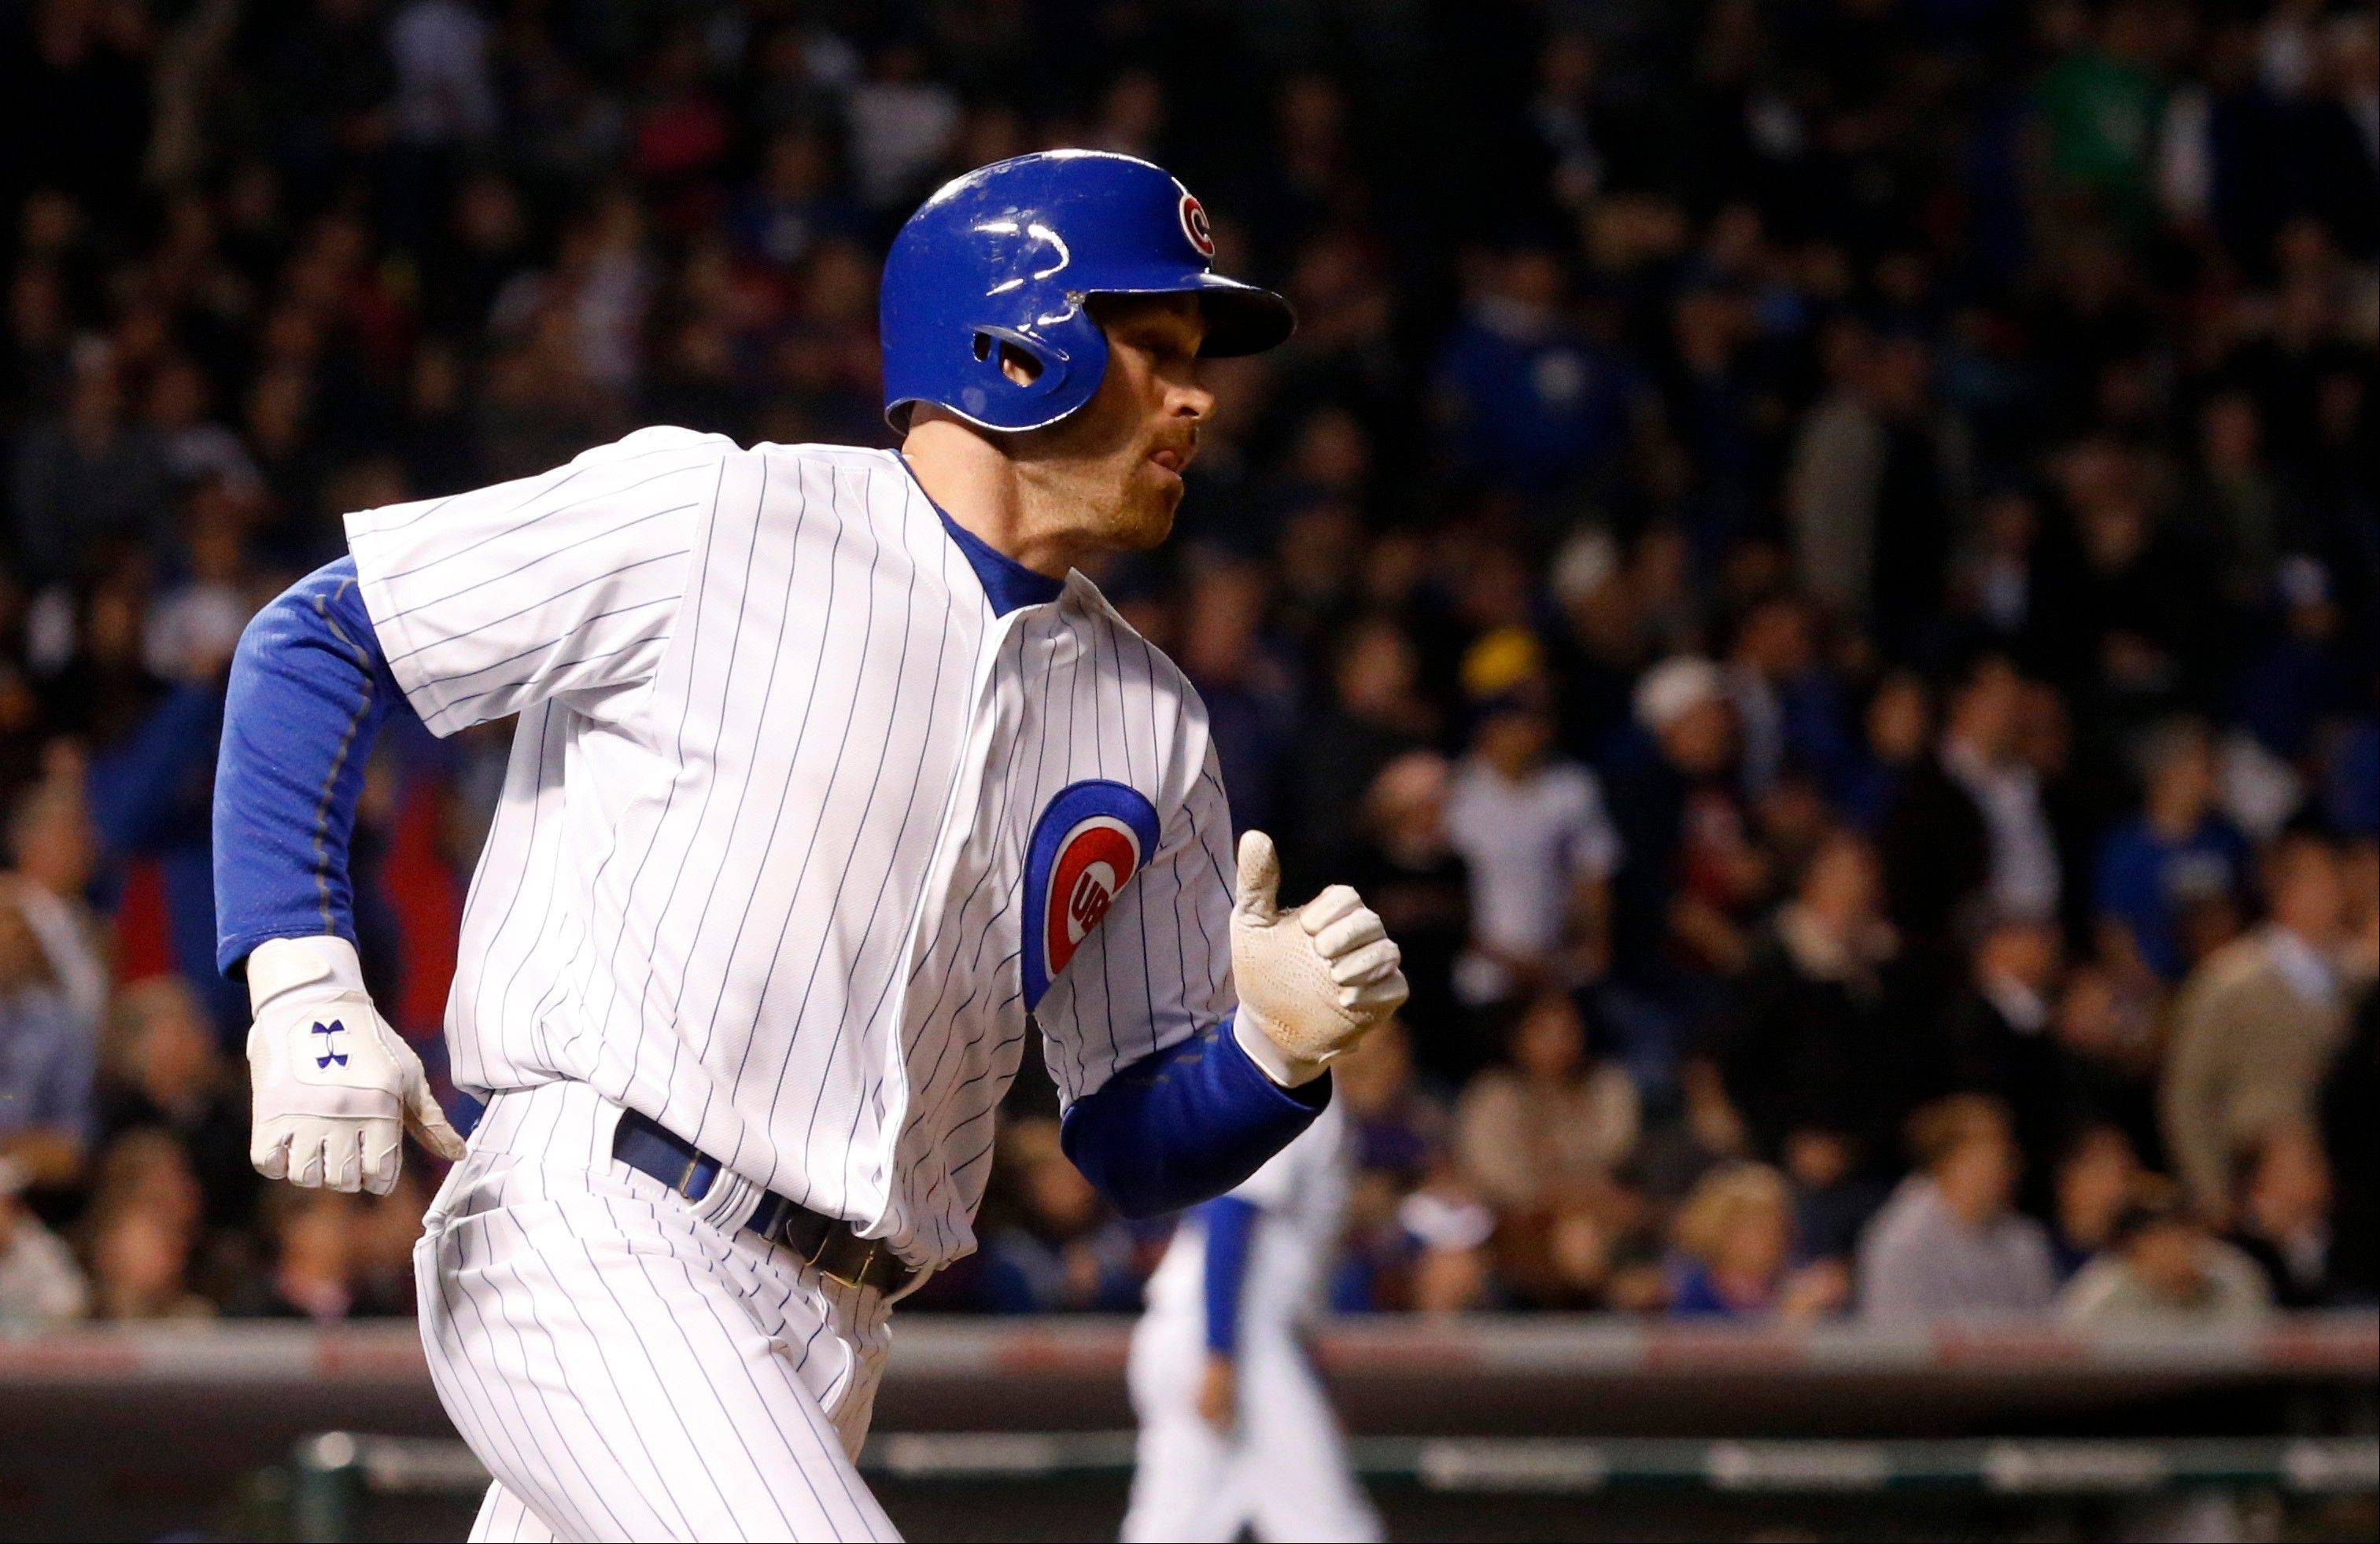 Chicago Cubs' Nate Schierholtz rounds the bases after hitting a two-run home run off St. Louis Cardinals starting pitcher Lance Lynn, also scoring Alfonso Soriano, during the fourth inning of a baseball game, Tuesday, May 7, 2013, in Chicago.